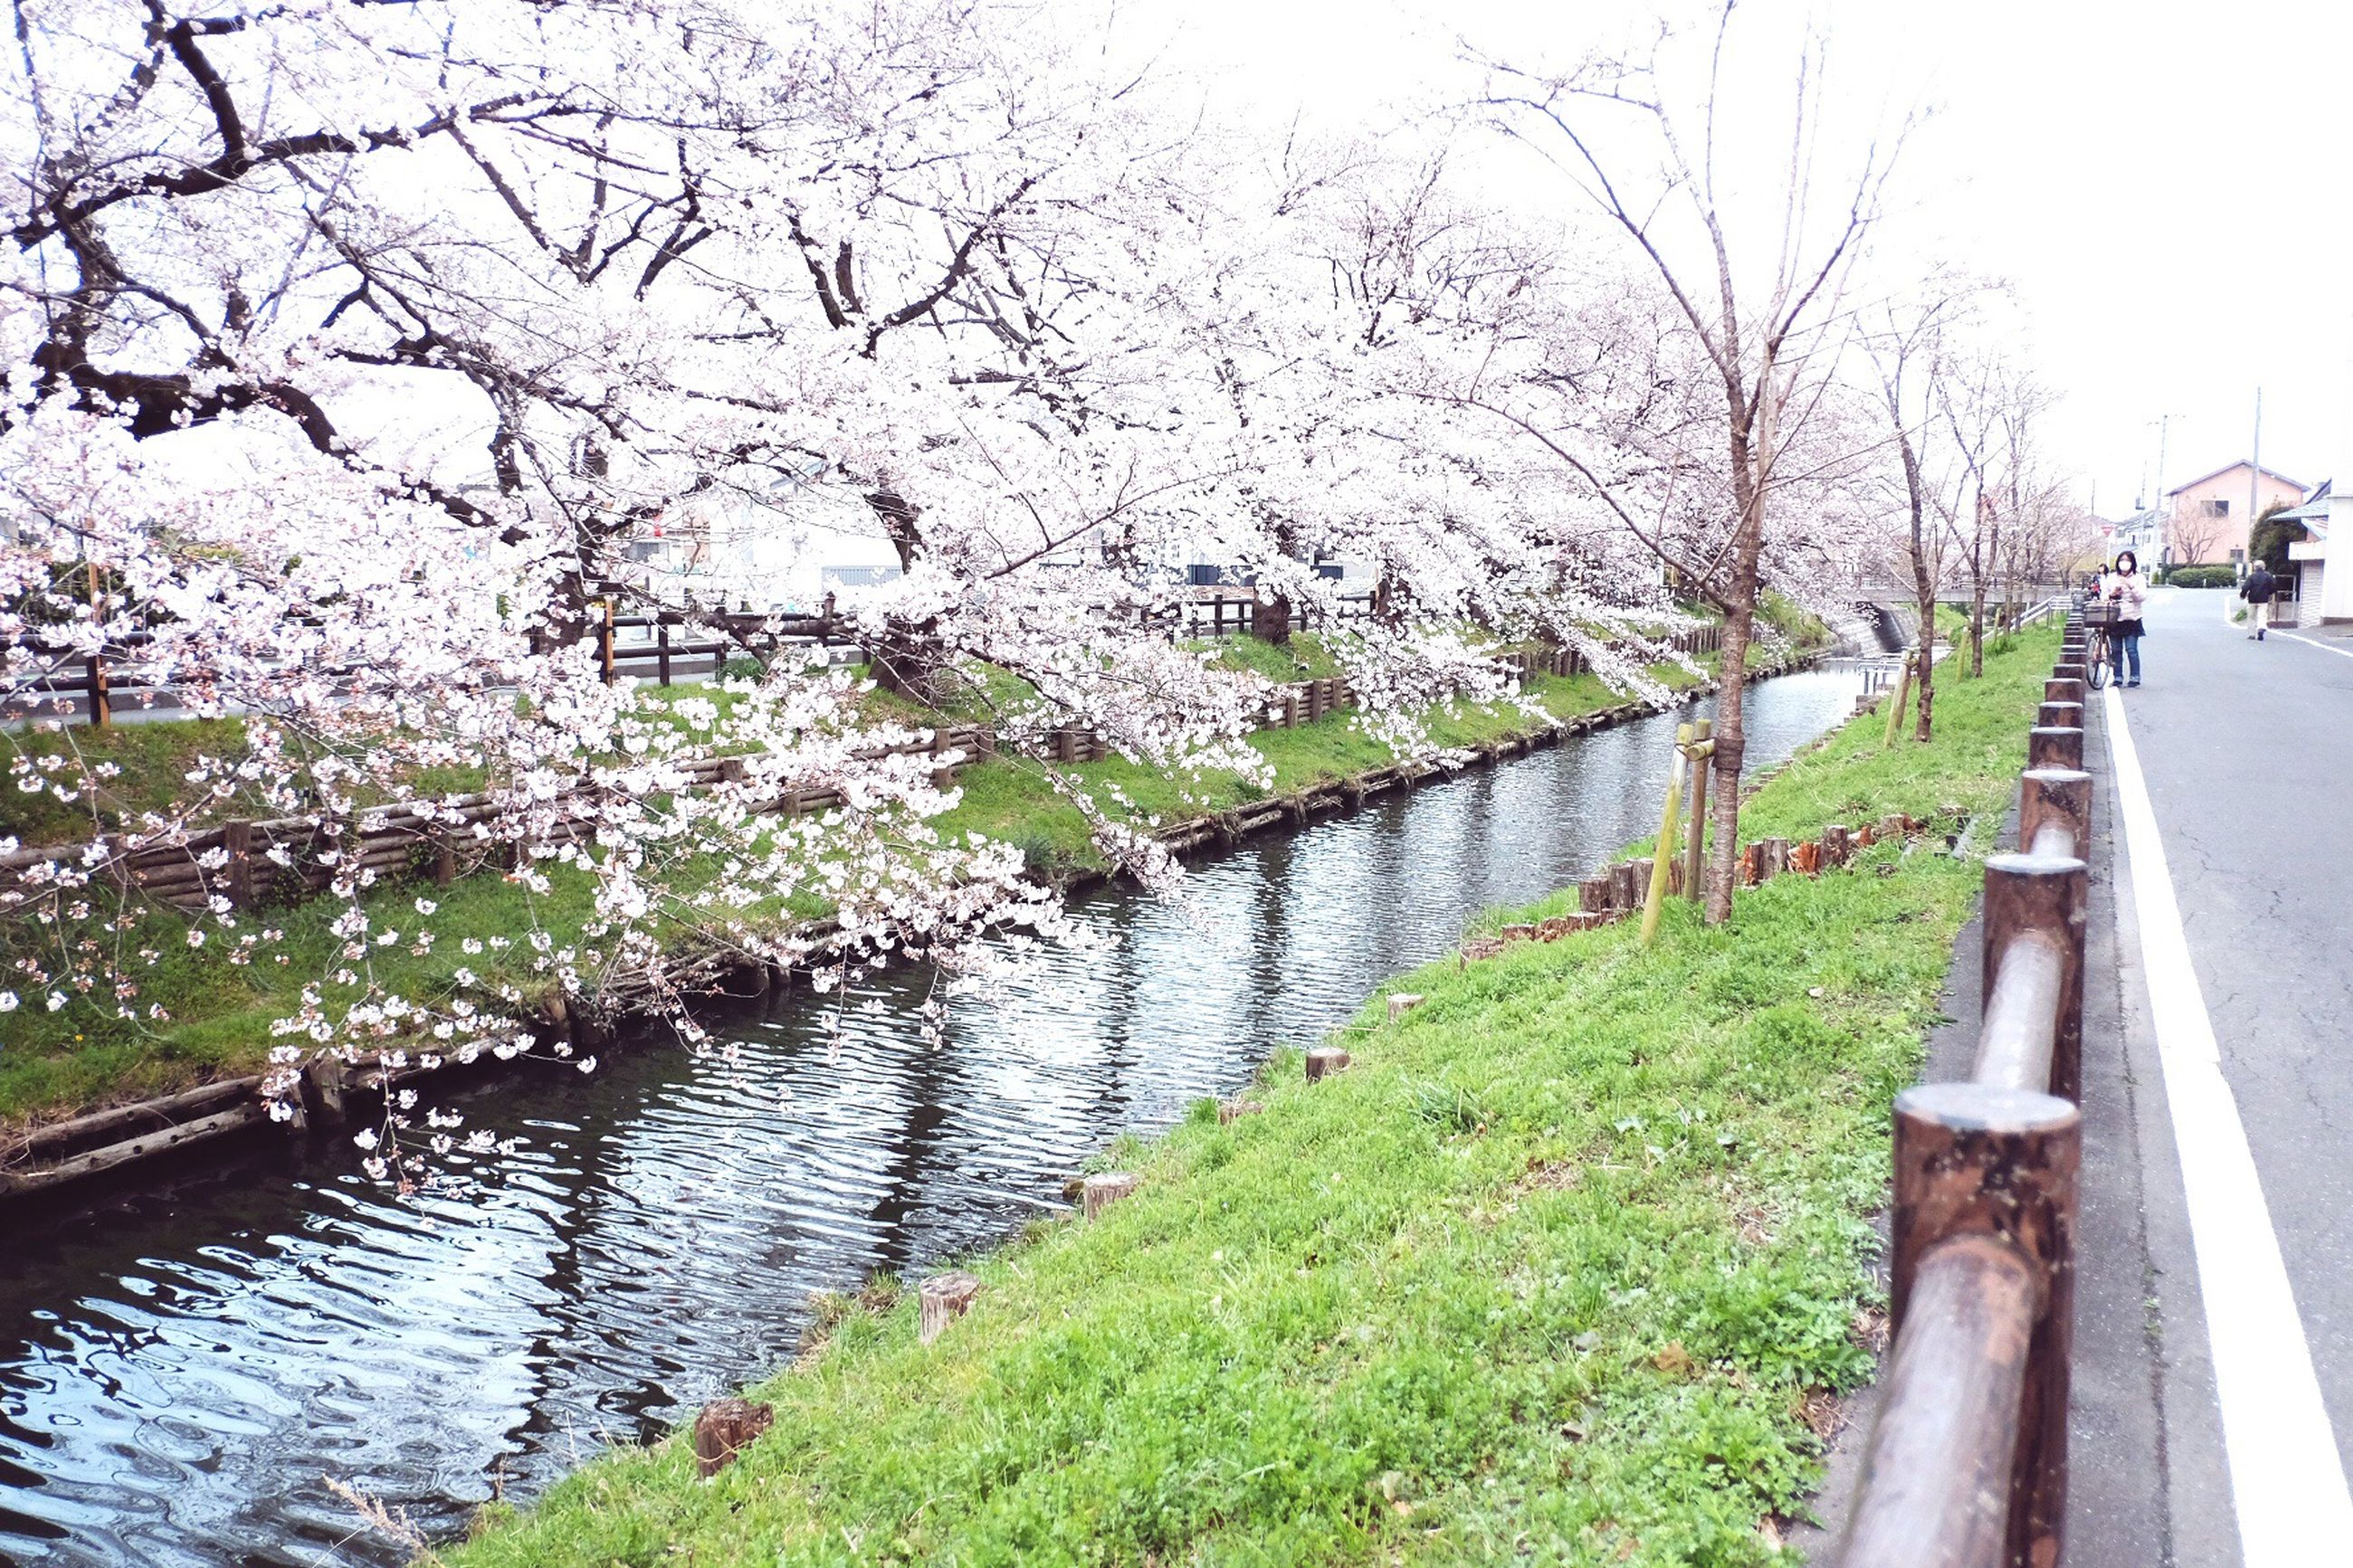 tree, nature, growth, outdoors, day, no people, beauty in nature, tranquility, cherry tree, flower, branch, cherry blossom, cultures, water, sky